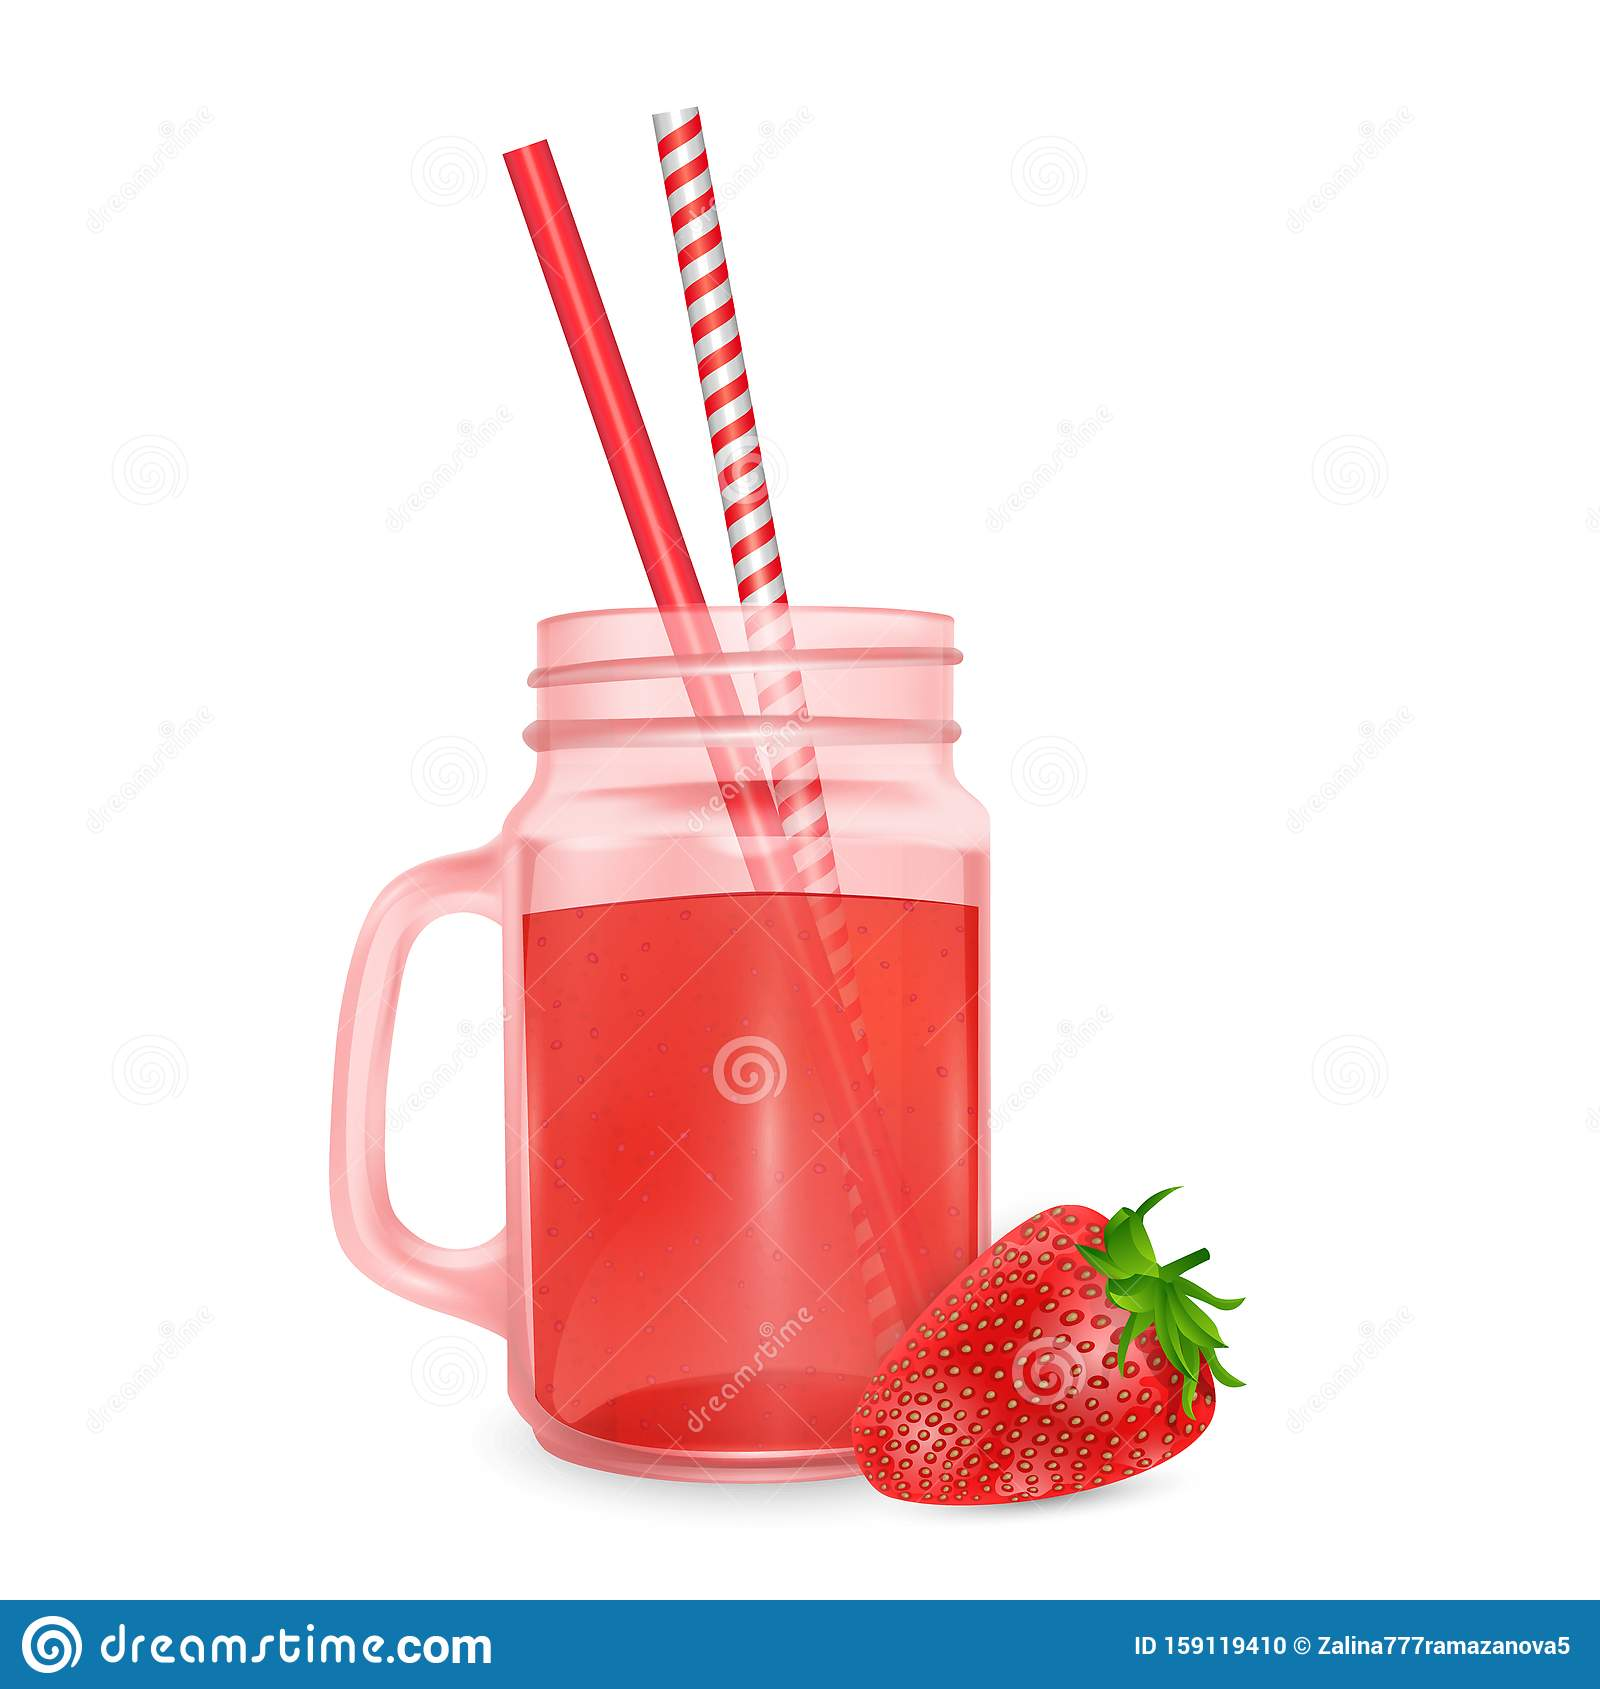 The jar of smoothies of red strawberry and striped straw for cocktails isolated on white background for advertising your products